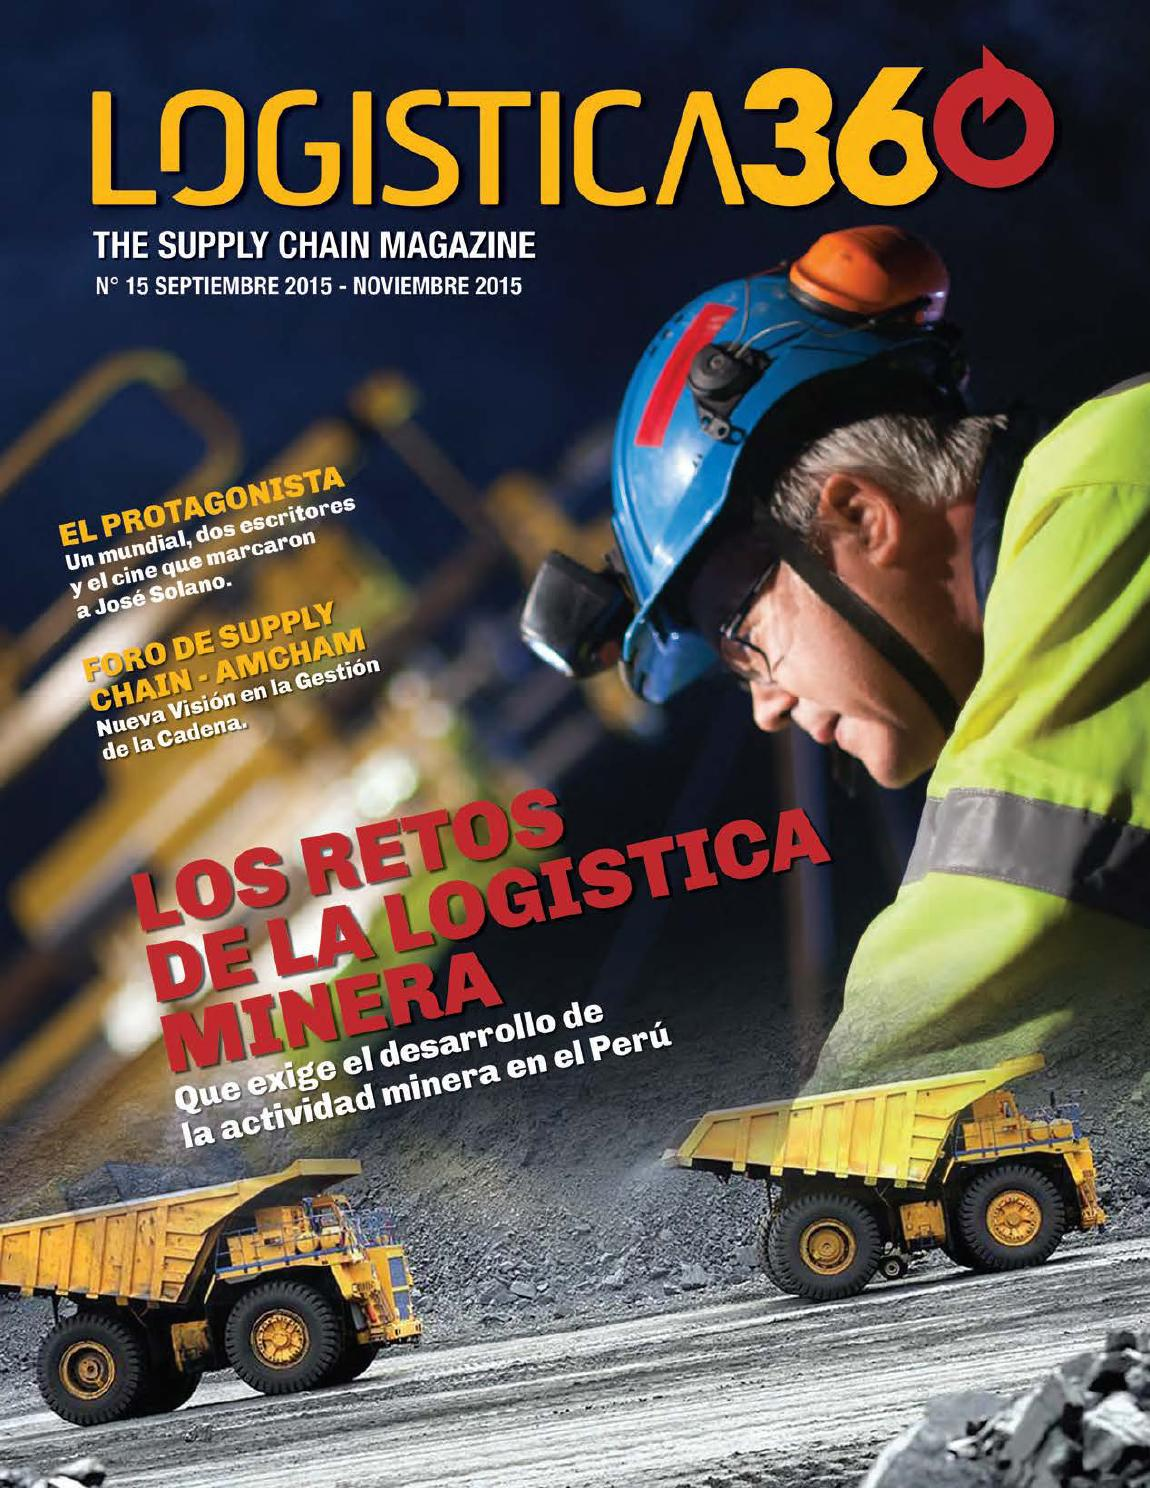 Edicion 15 by Logistica 360 The Supply Chain Magazine - issuu